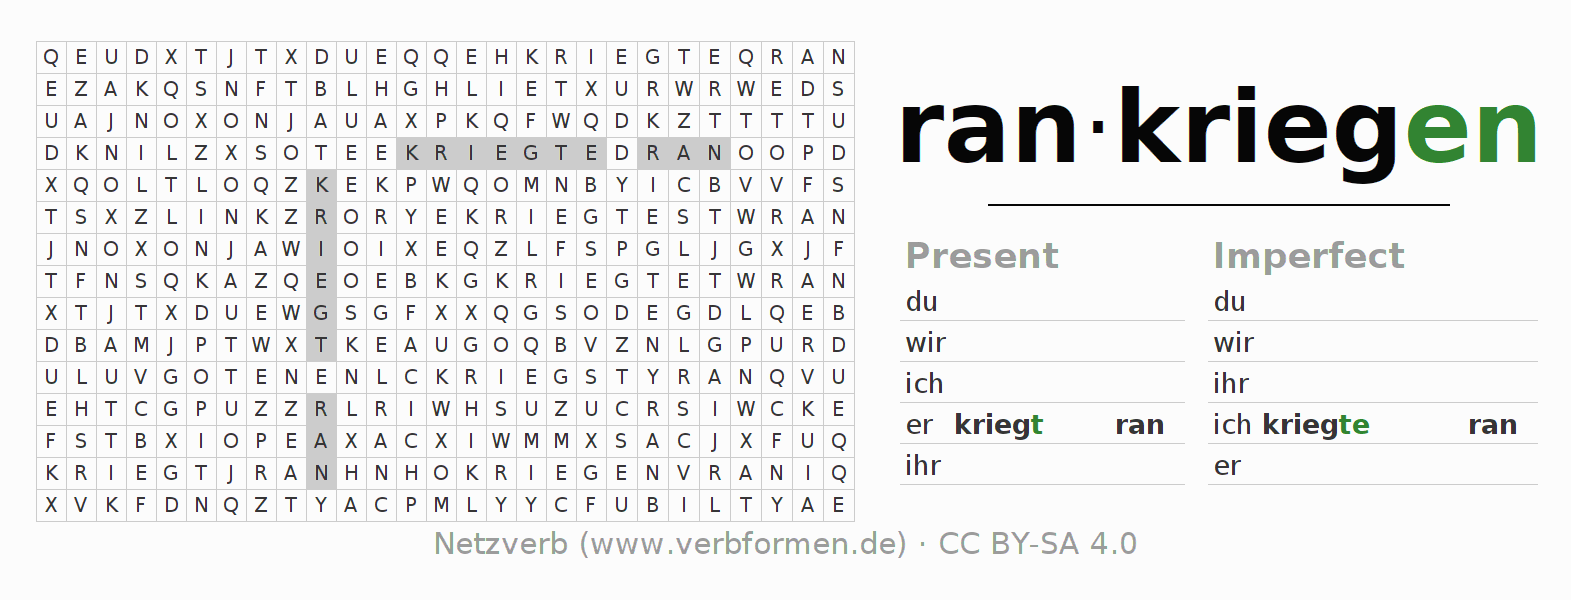 Word search puzzle for the conjugation of the verb rankriegen